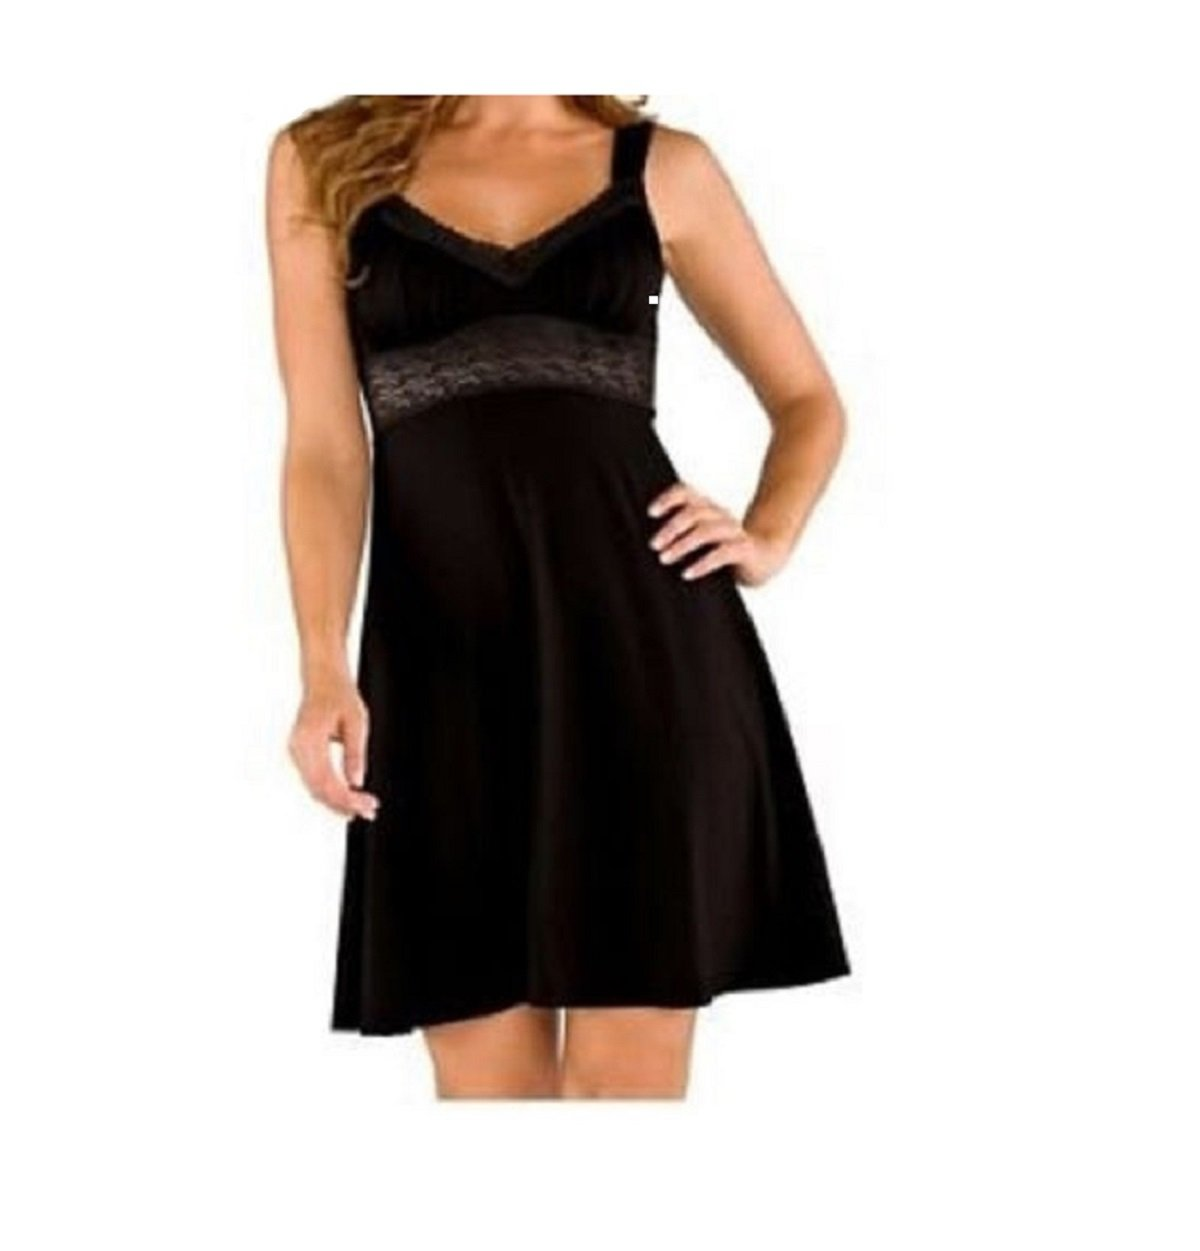 Cosabella Laila Chemise Style LAILA2701 (Large, Black) by Cosabella